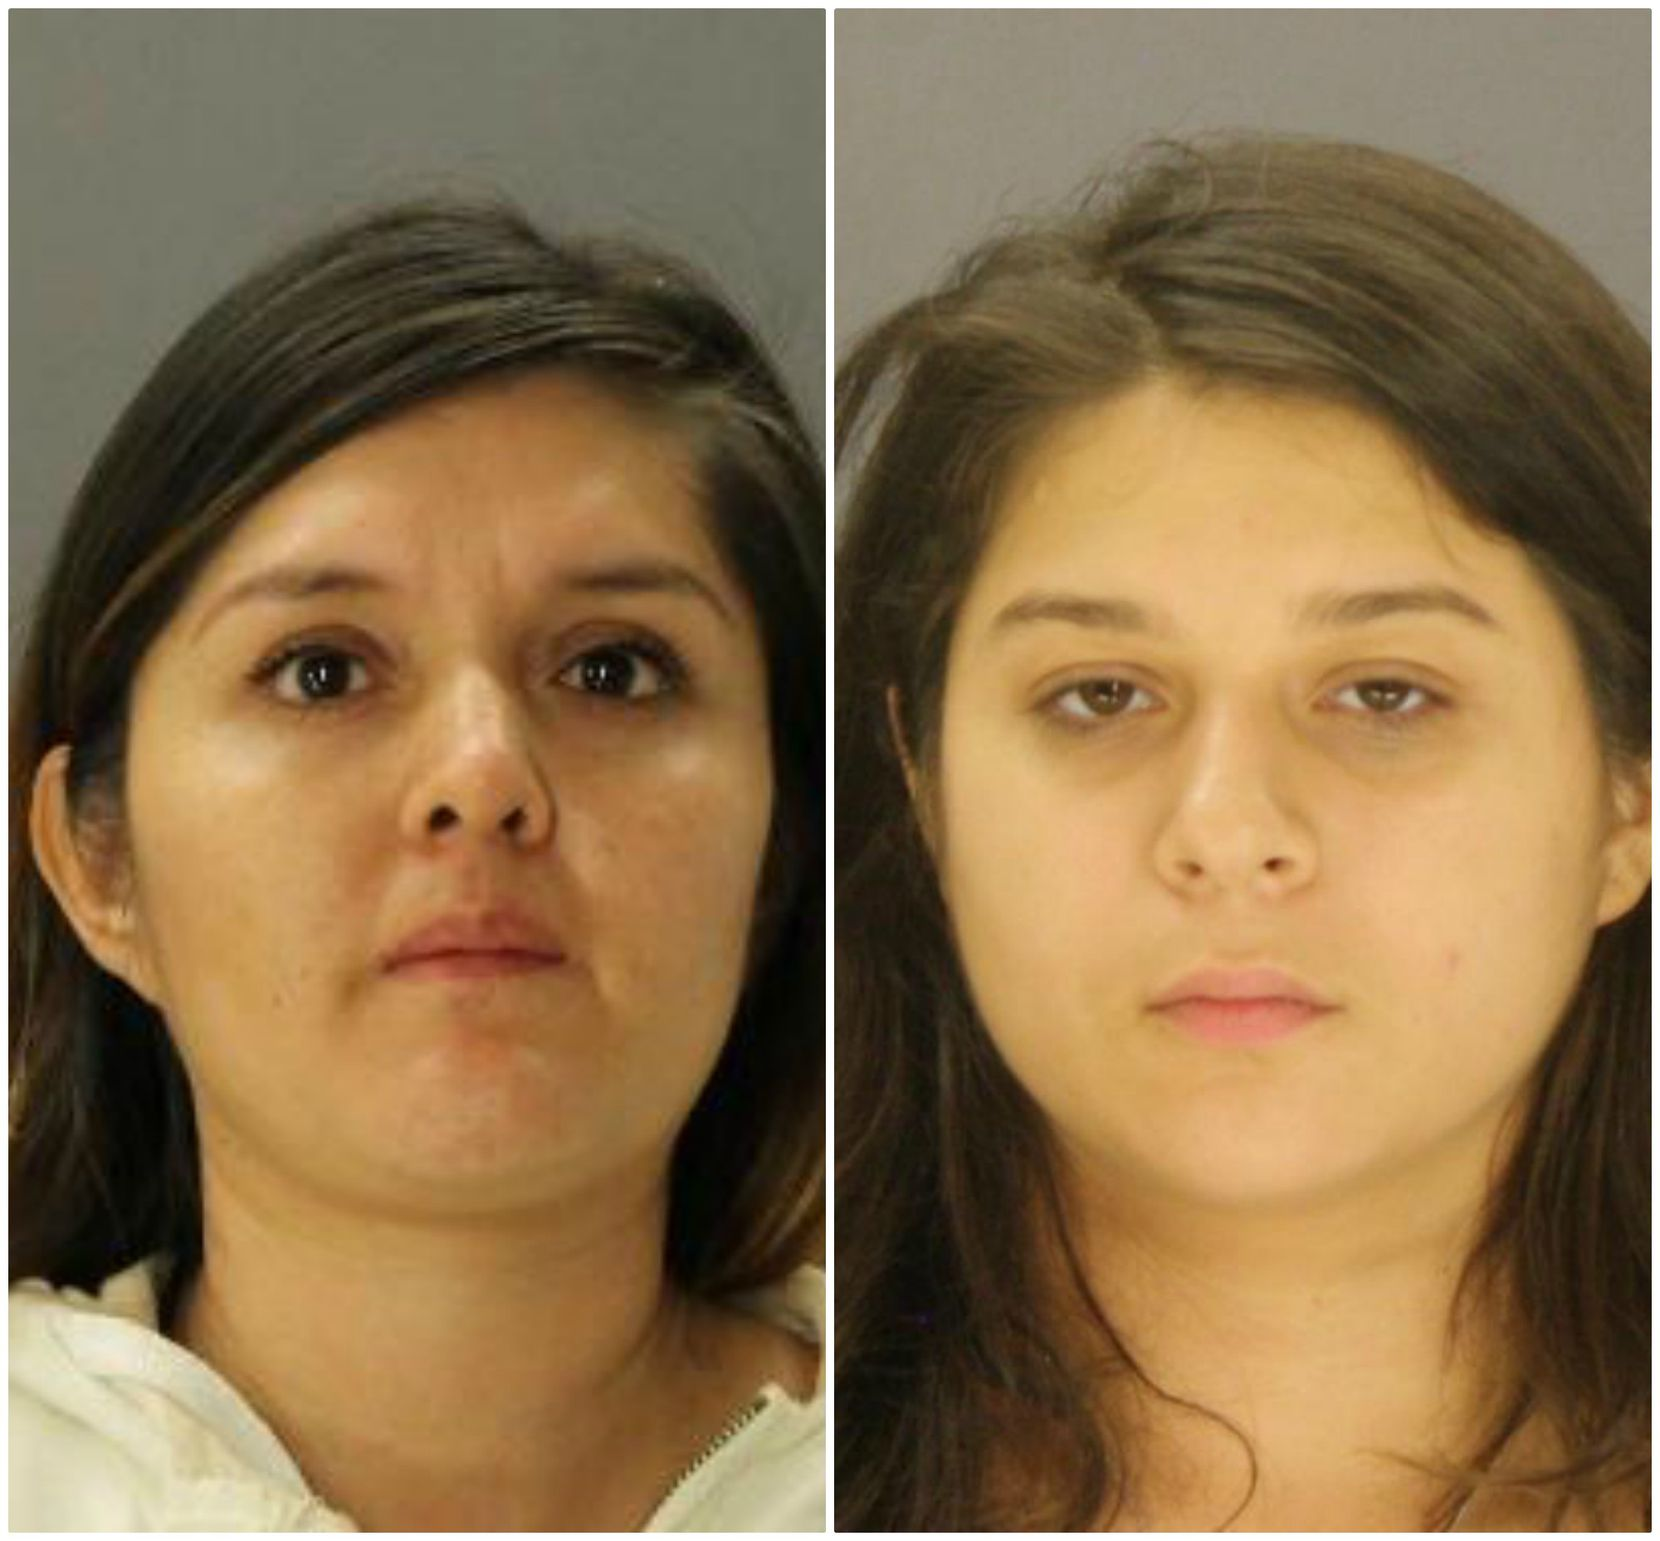 Brenda Delgado (left) and Crystal Cortes also face capital murder charges in the case. Authorities say Delgado set the plot in motion, and Cortes was the getaway driver.